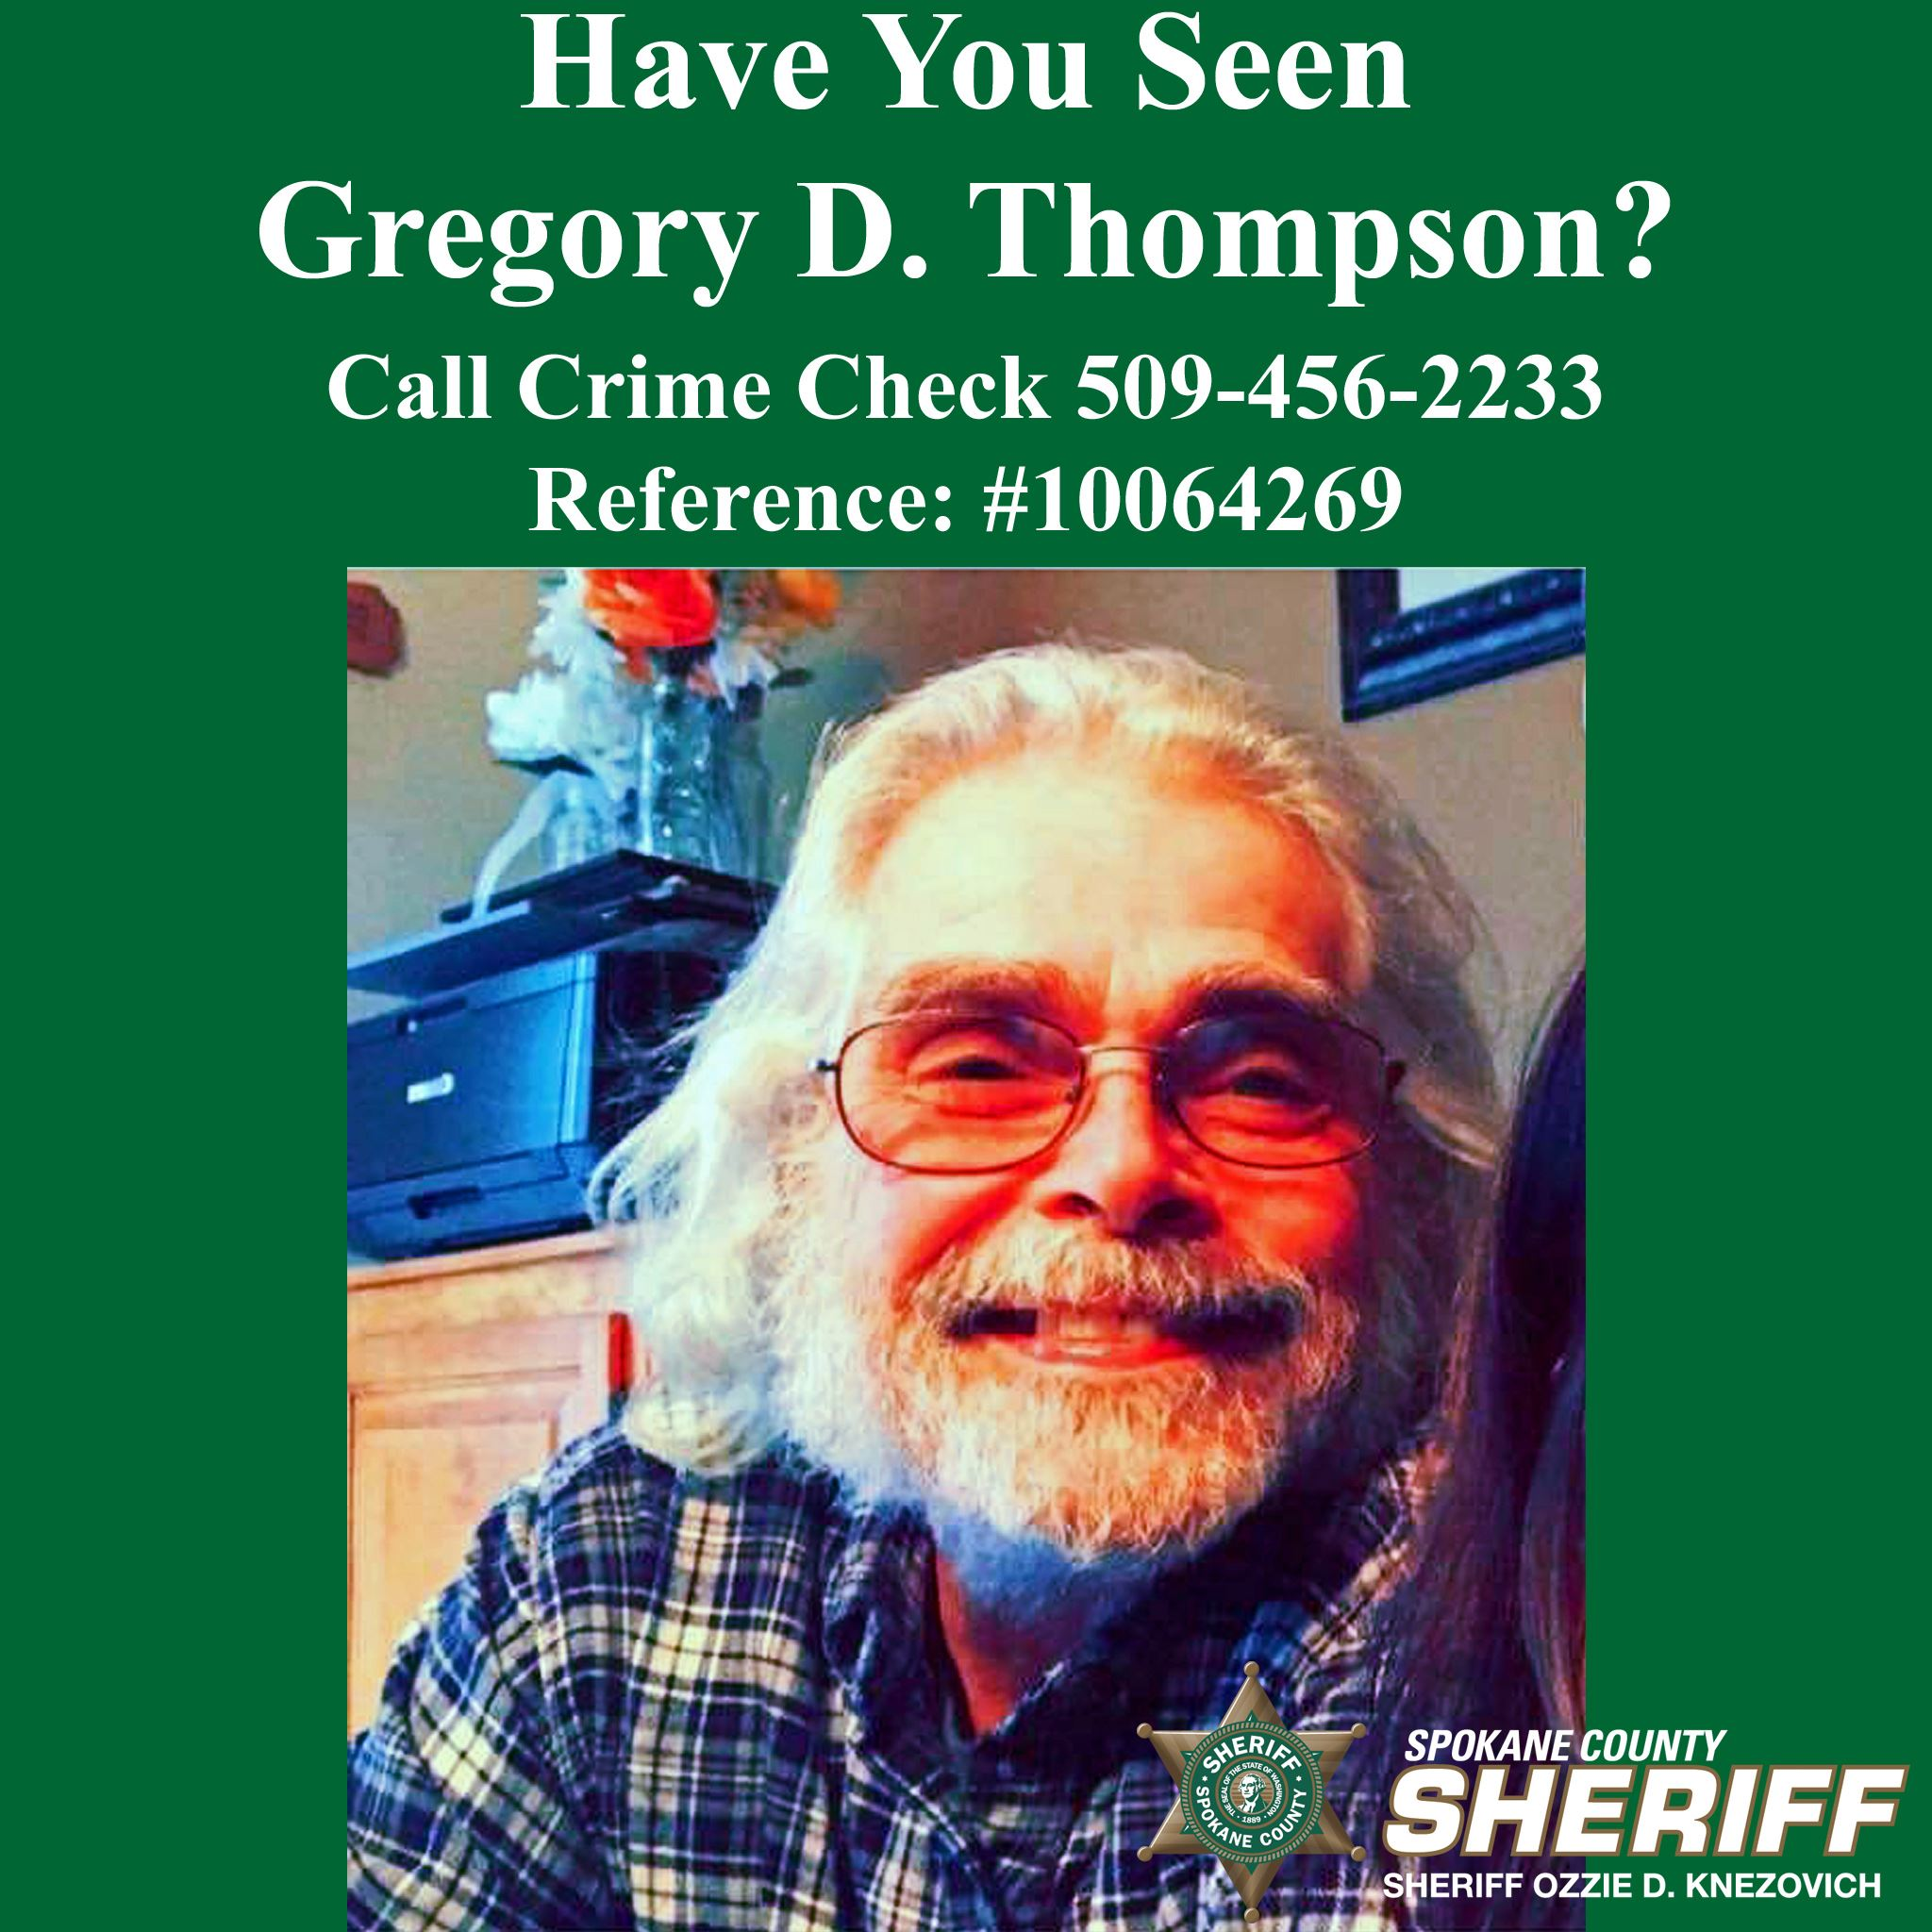 Gregory D. Thompson